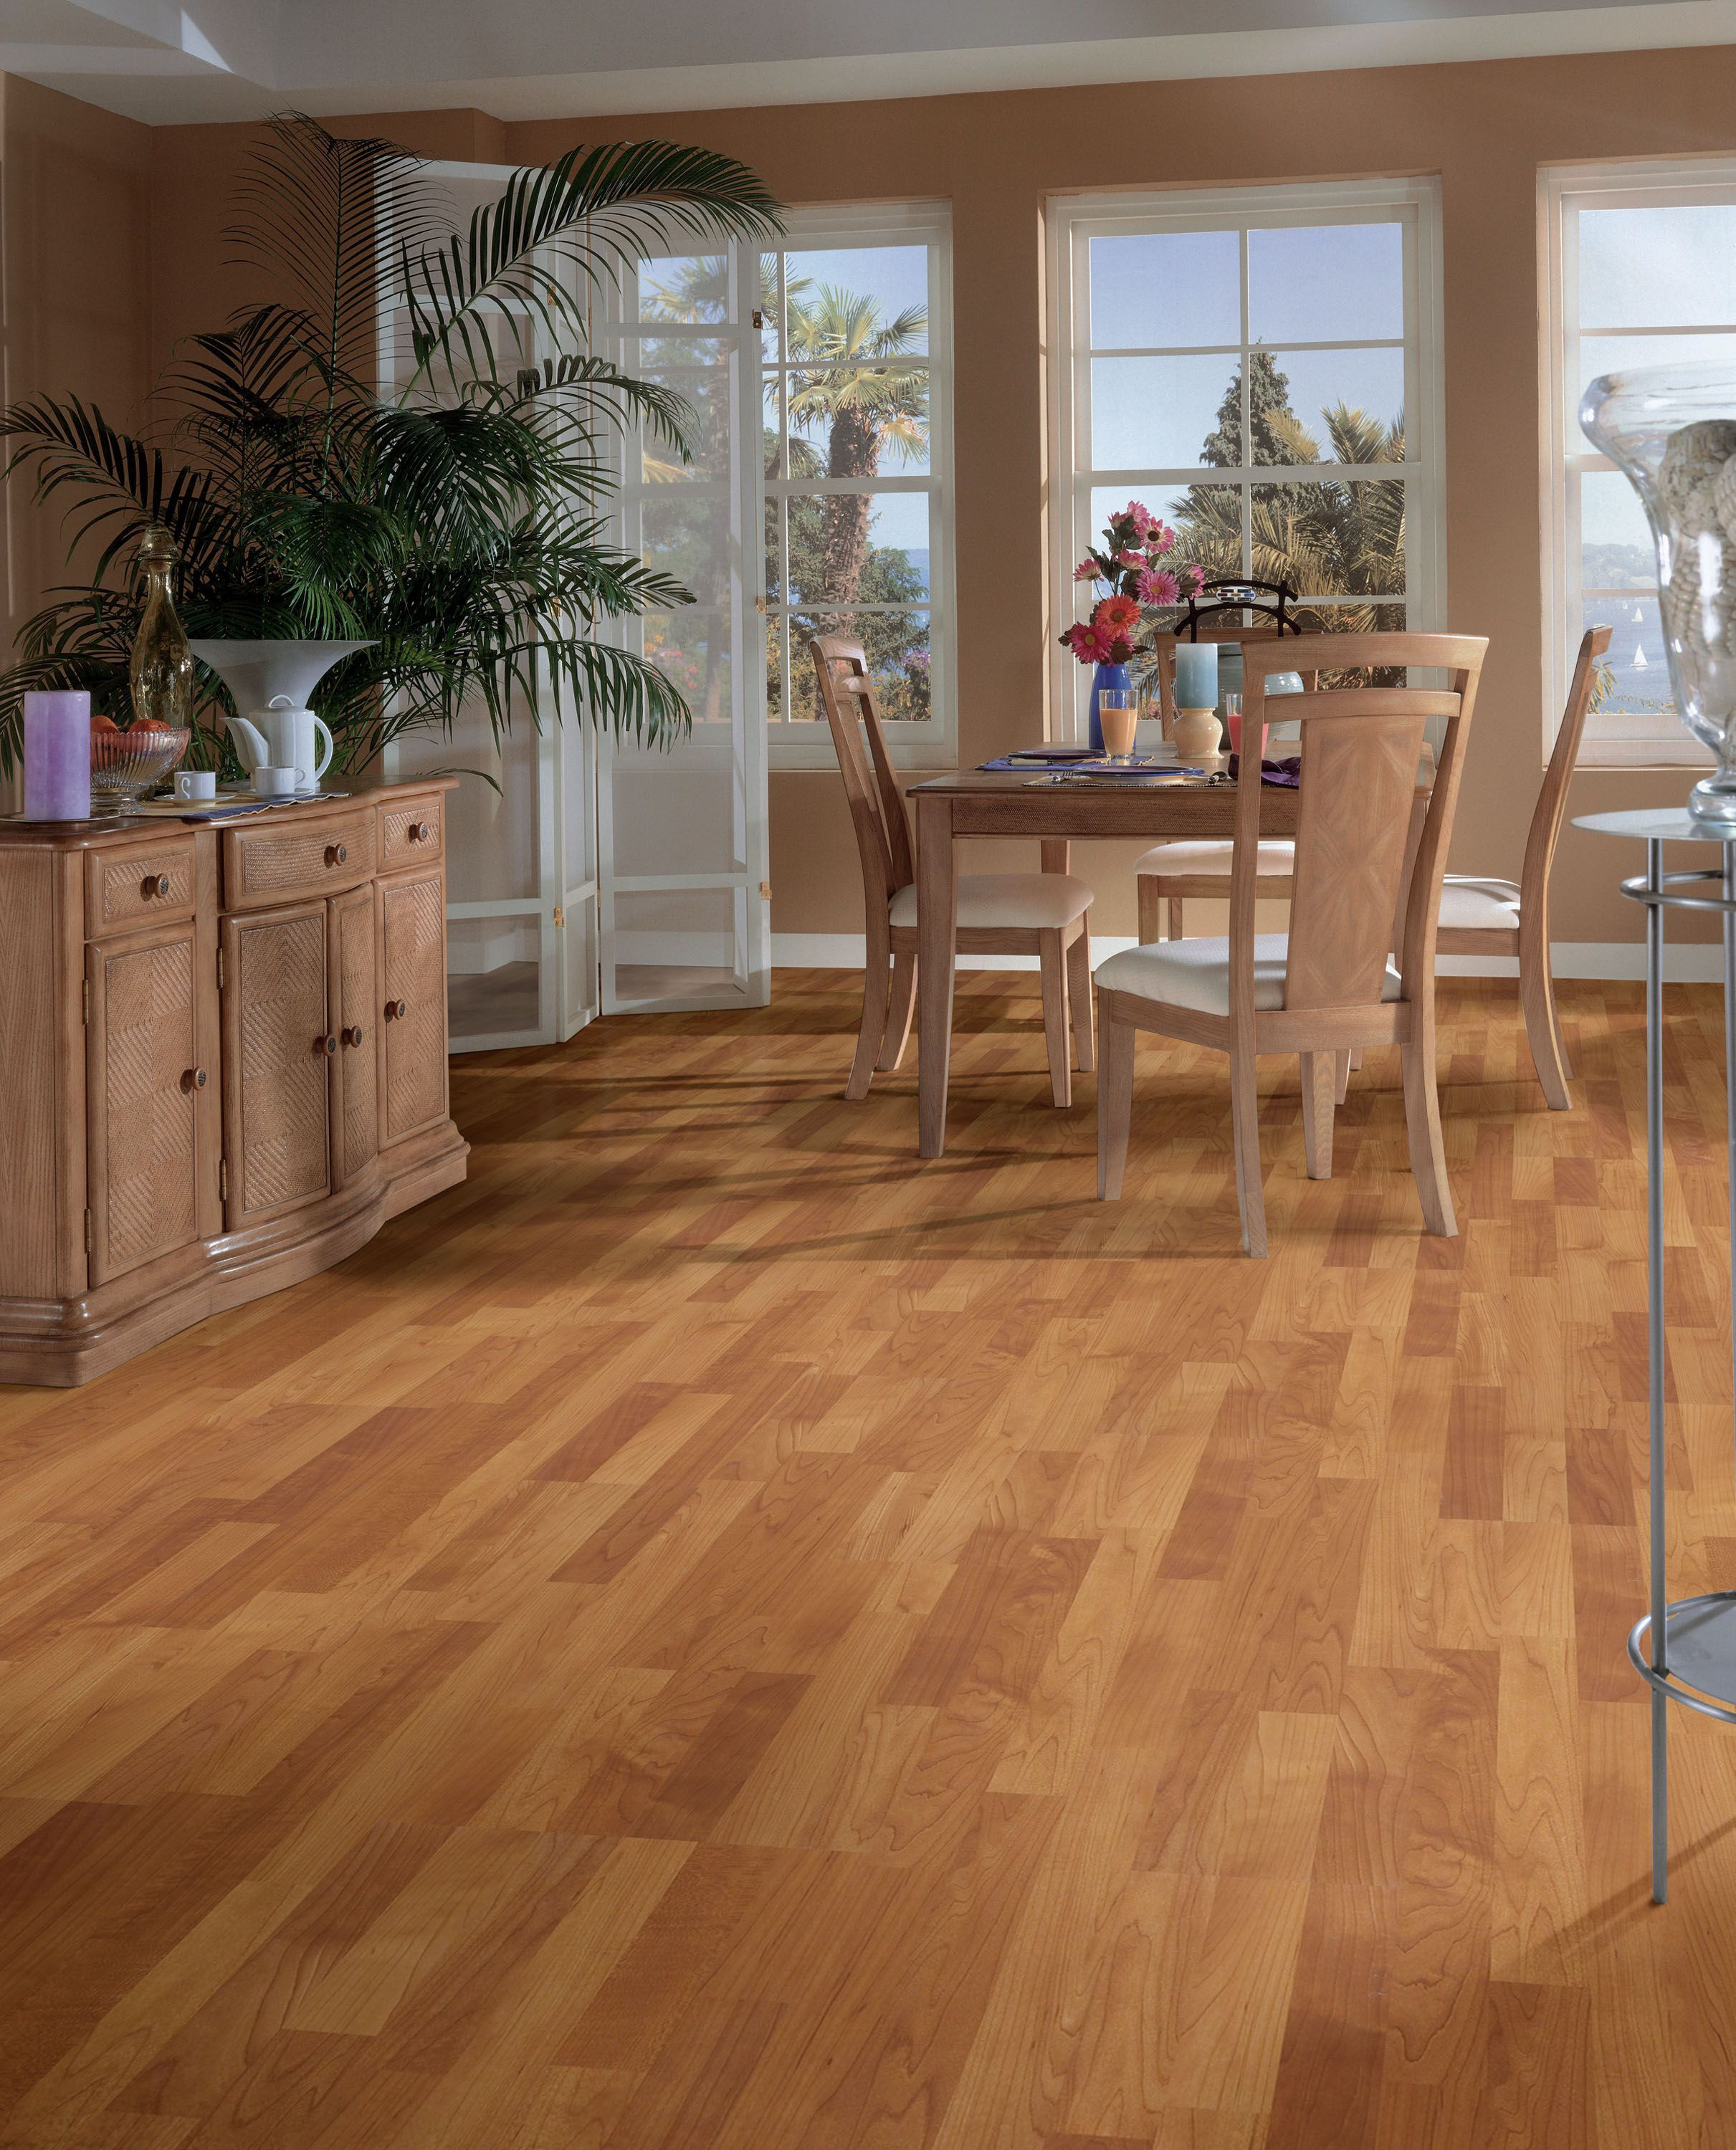 bruce locking hardwood flooring of lowes engineered wood flooring new ideas walnut engineered hardwood with regard to lowes engineered wood flooring lovely floor lovely laminate hardwood flooring cost design laminate of lowes engineered